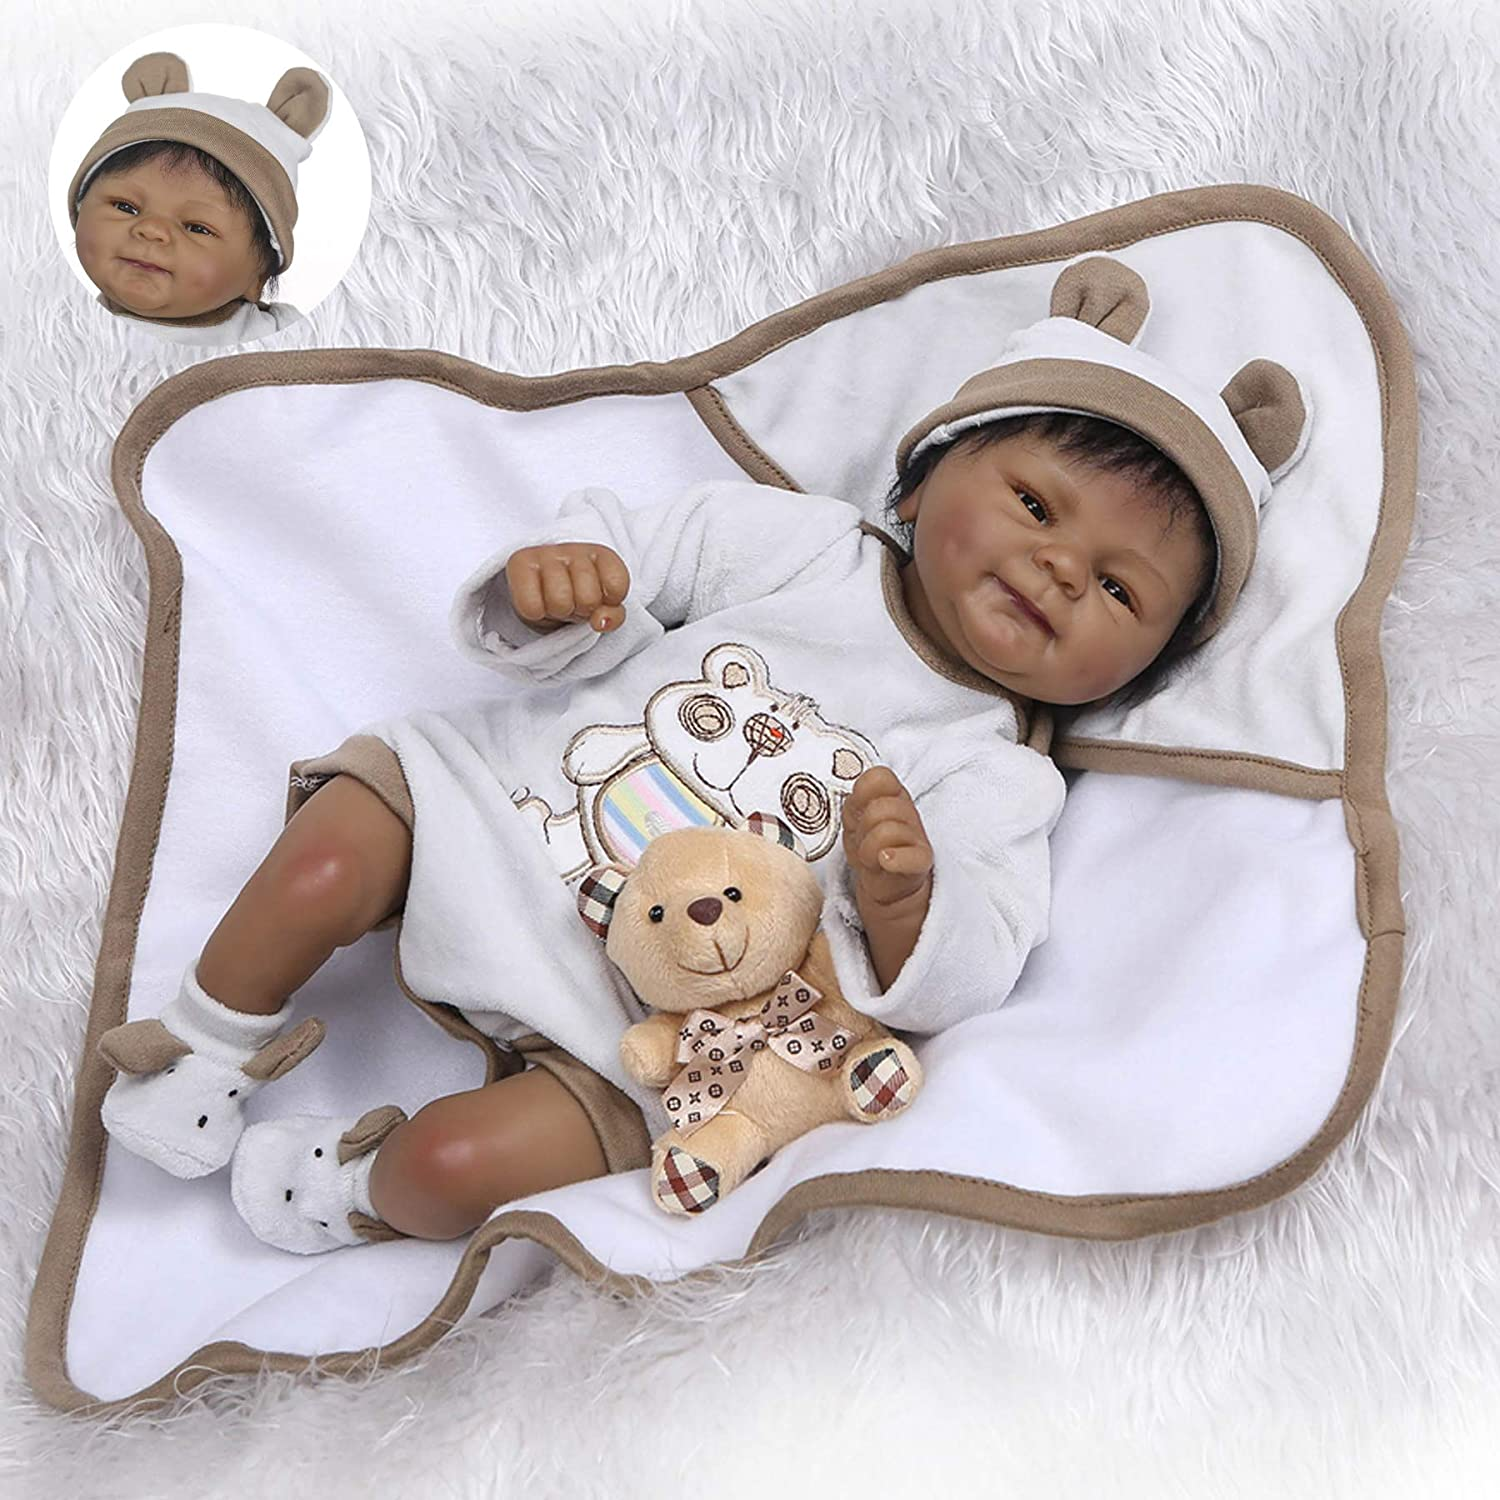 Zero Pam 18 African American Handmade Black Skin Truly Alive Weighted Poseable Silicone Reborn Baby Doll with Bear Toy and Clothes